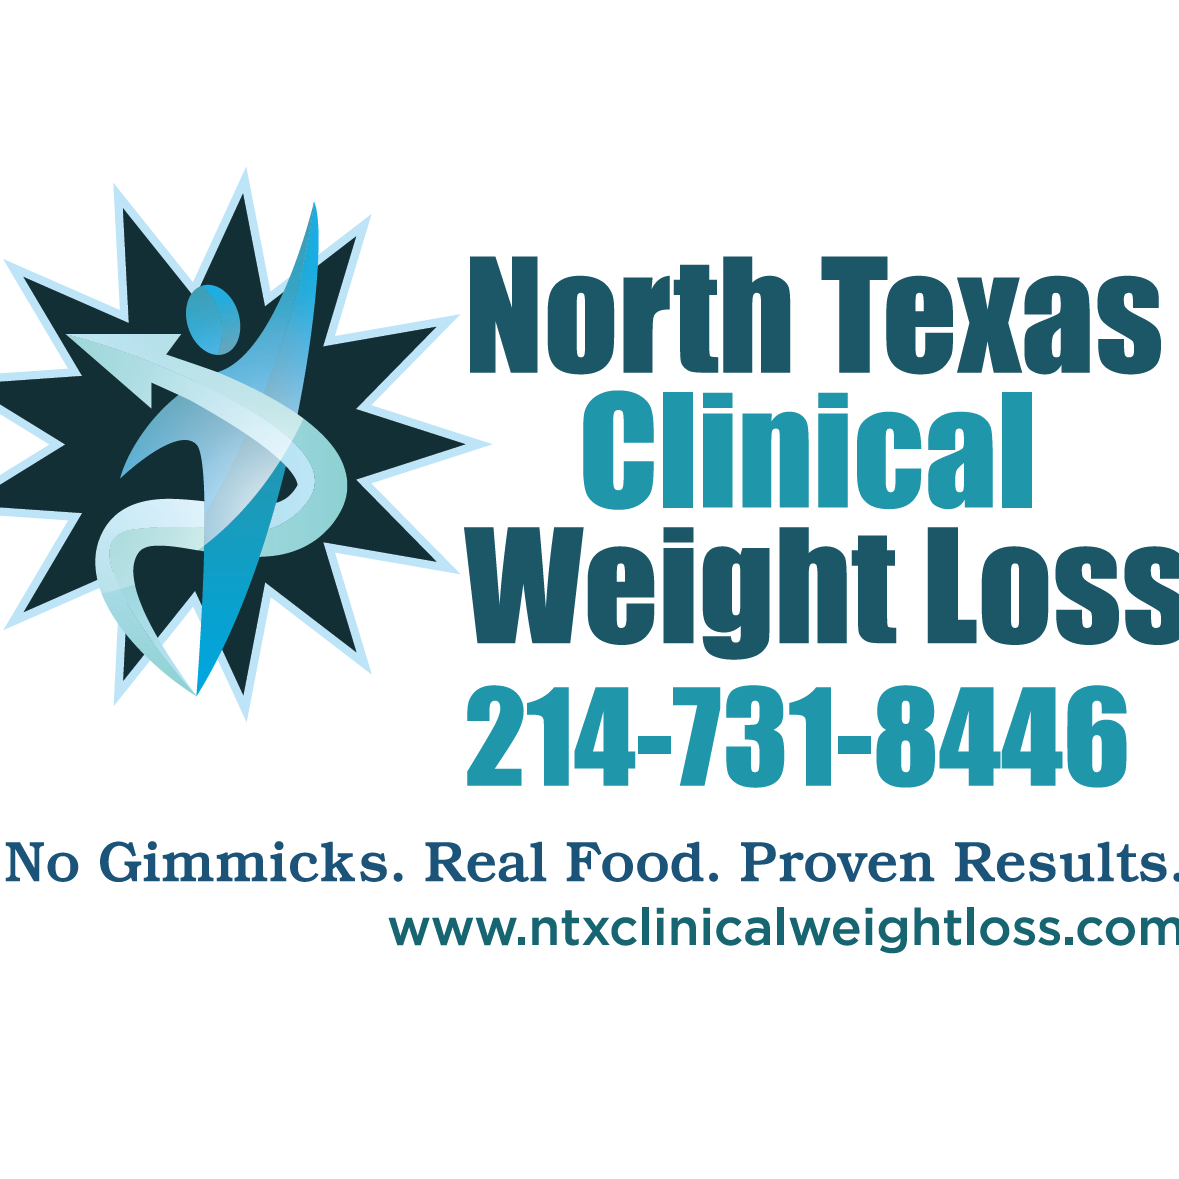 North Texas Clinical Weight Loss